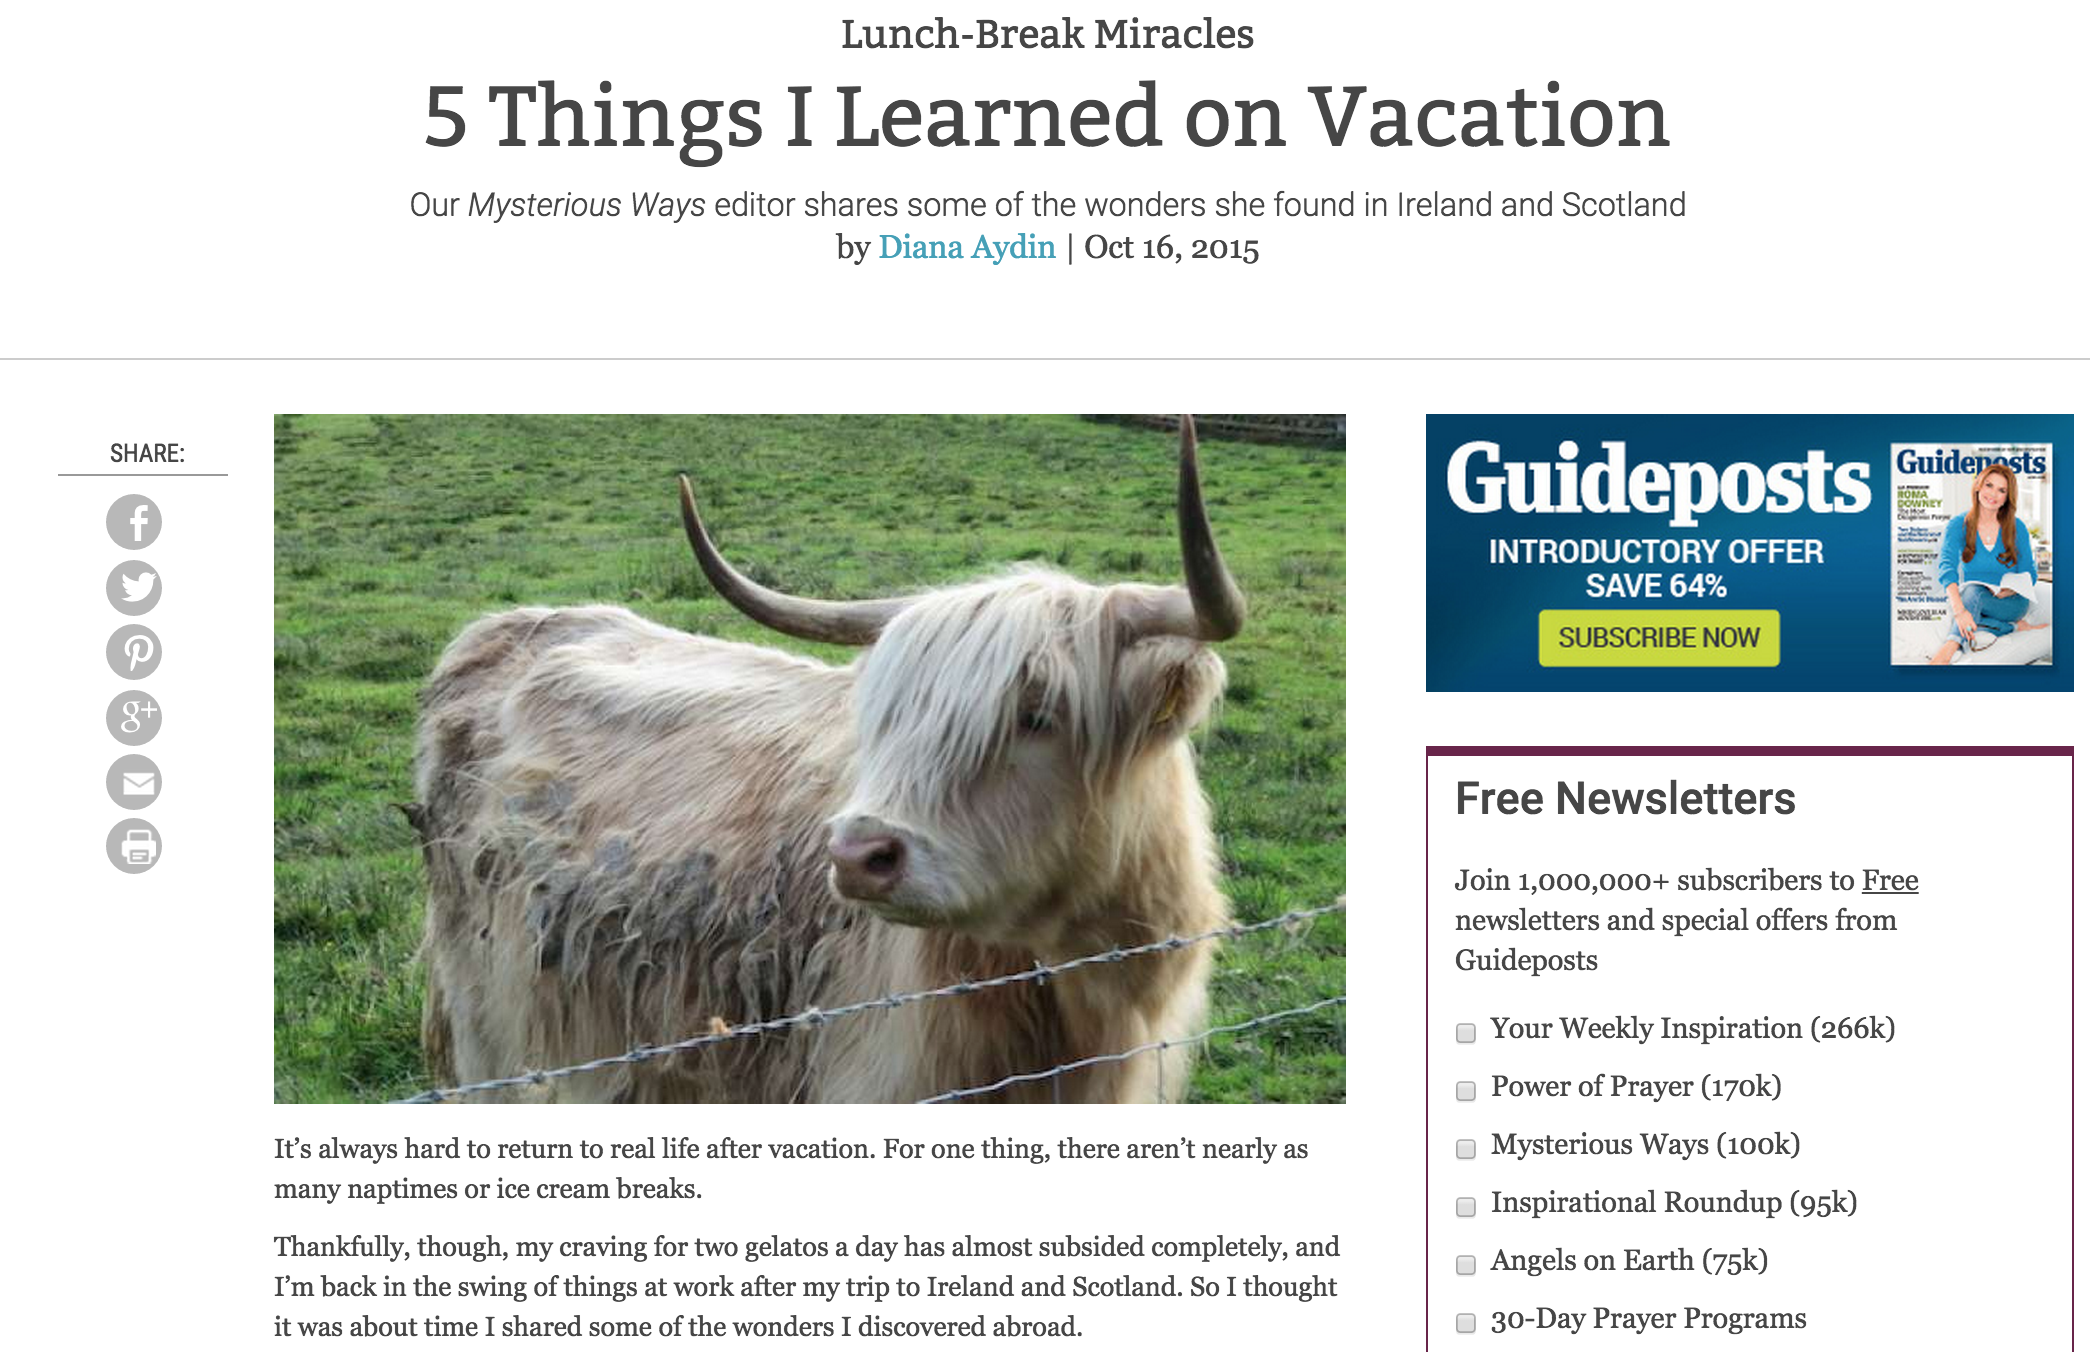 5 Things I Learned on Vacation